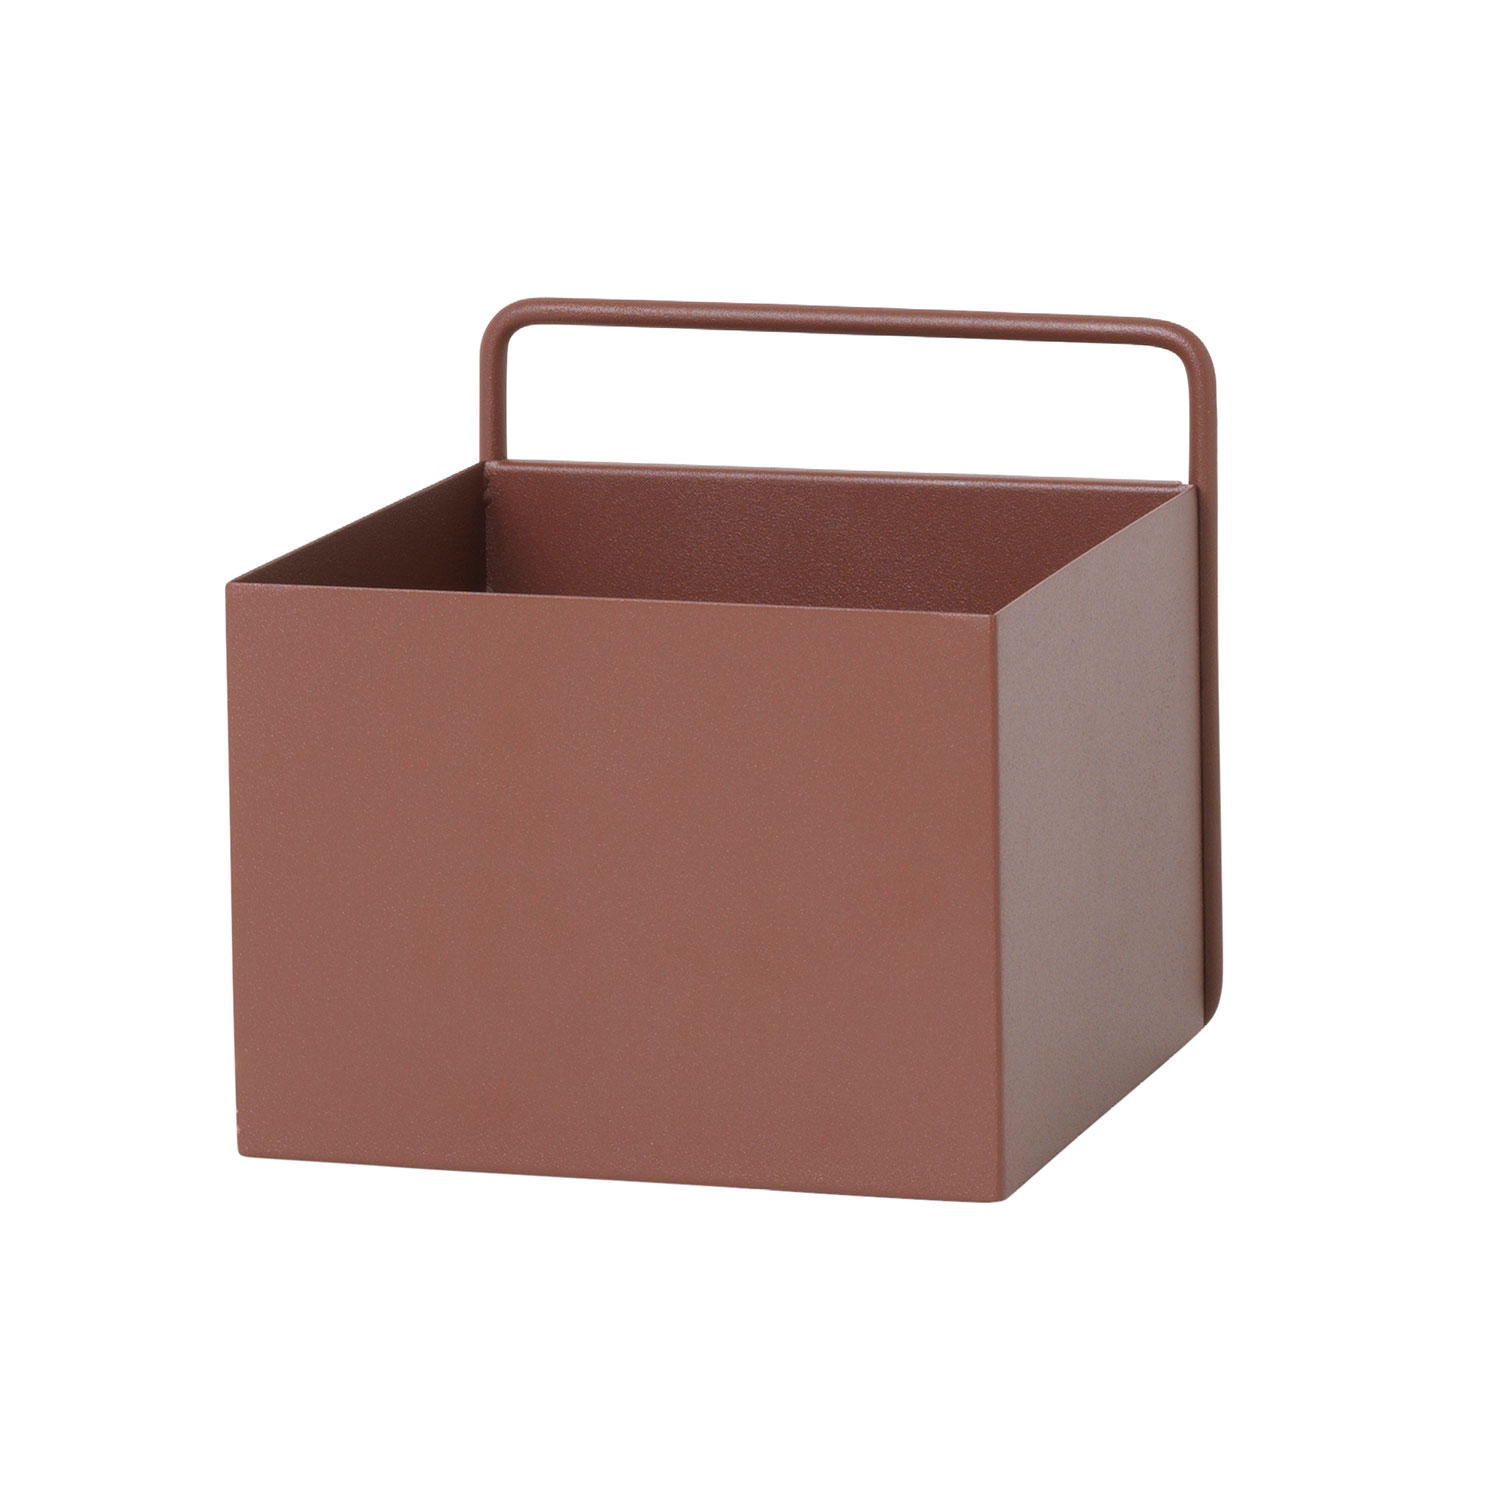 Bilde av Ferm Living-Wall Box Square, Brun